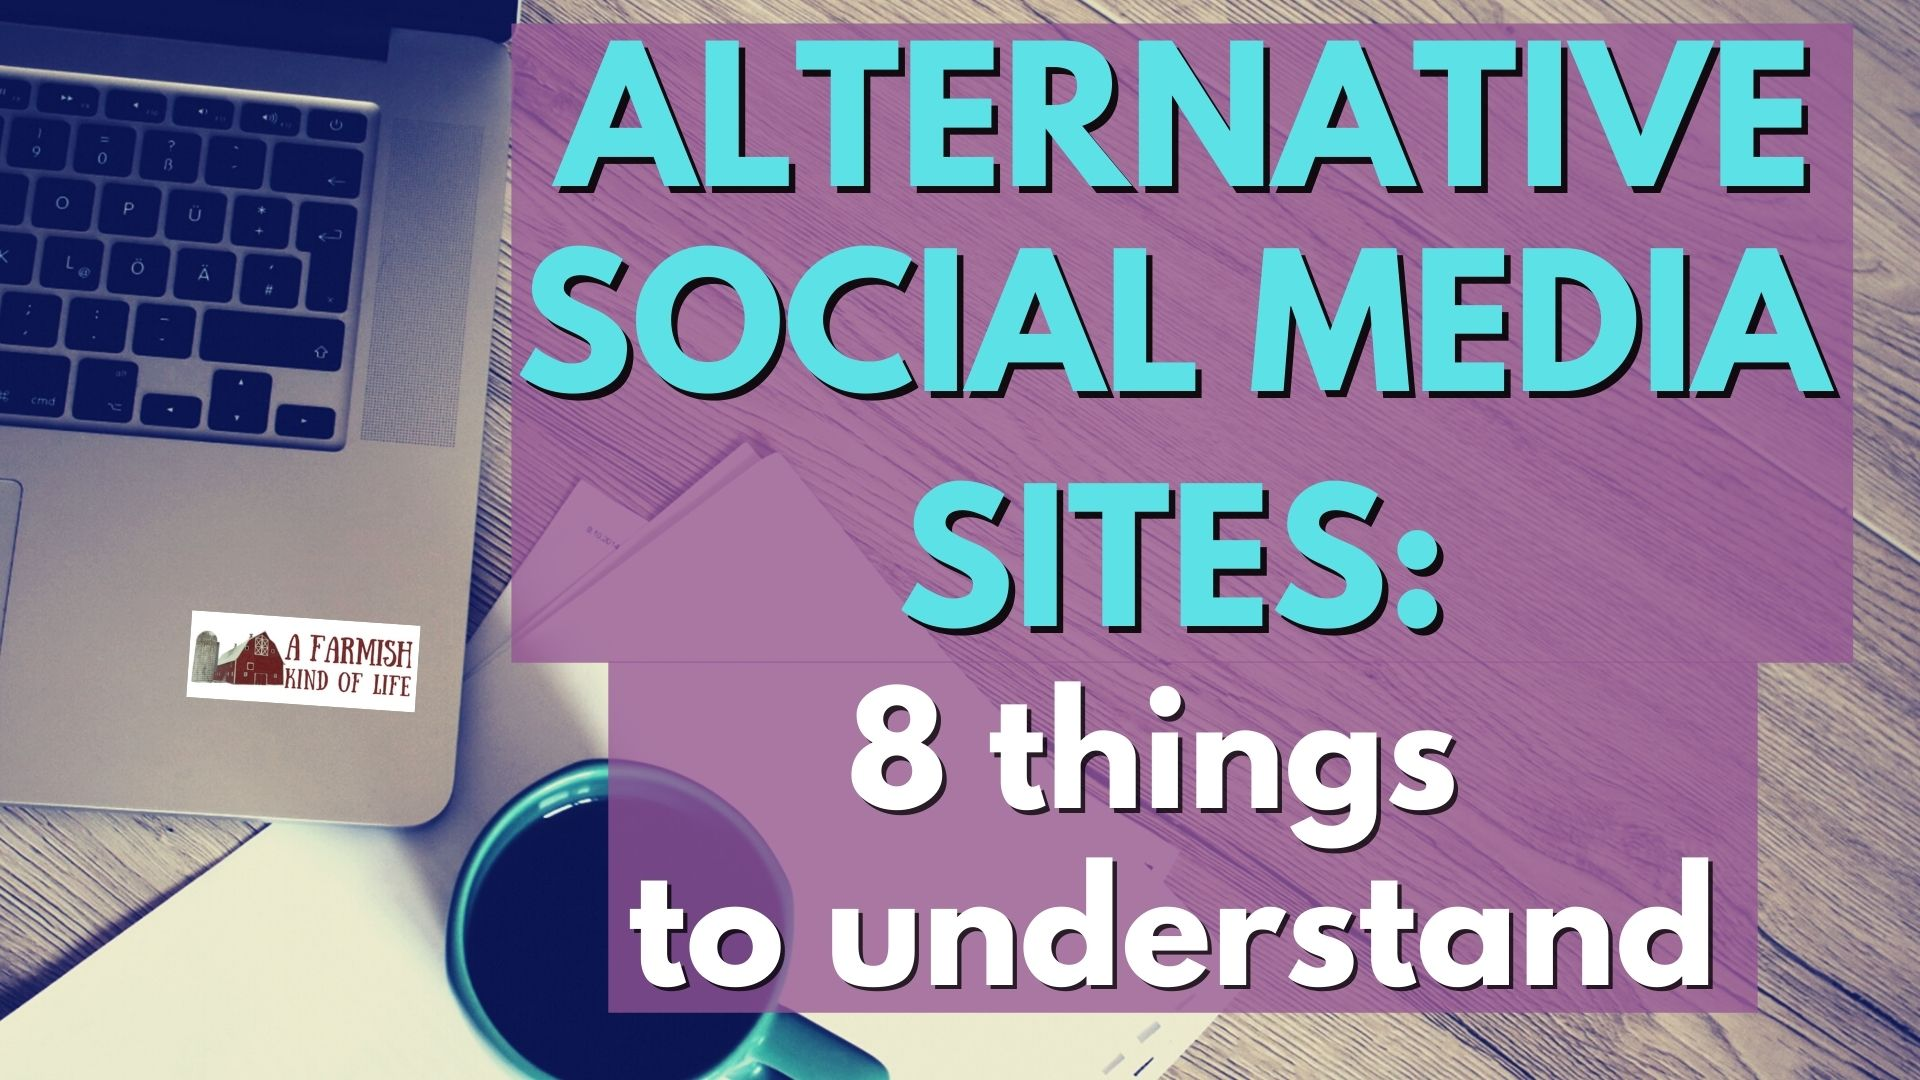 146: Alternative Social Media Sites – 8 Things to Understand